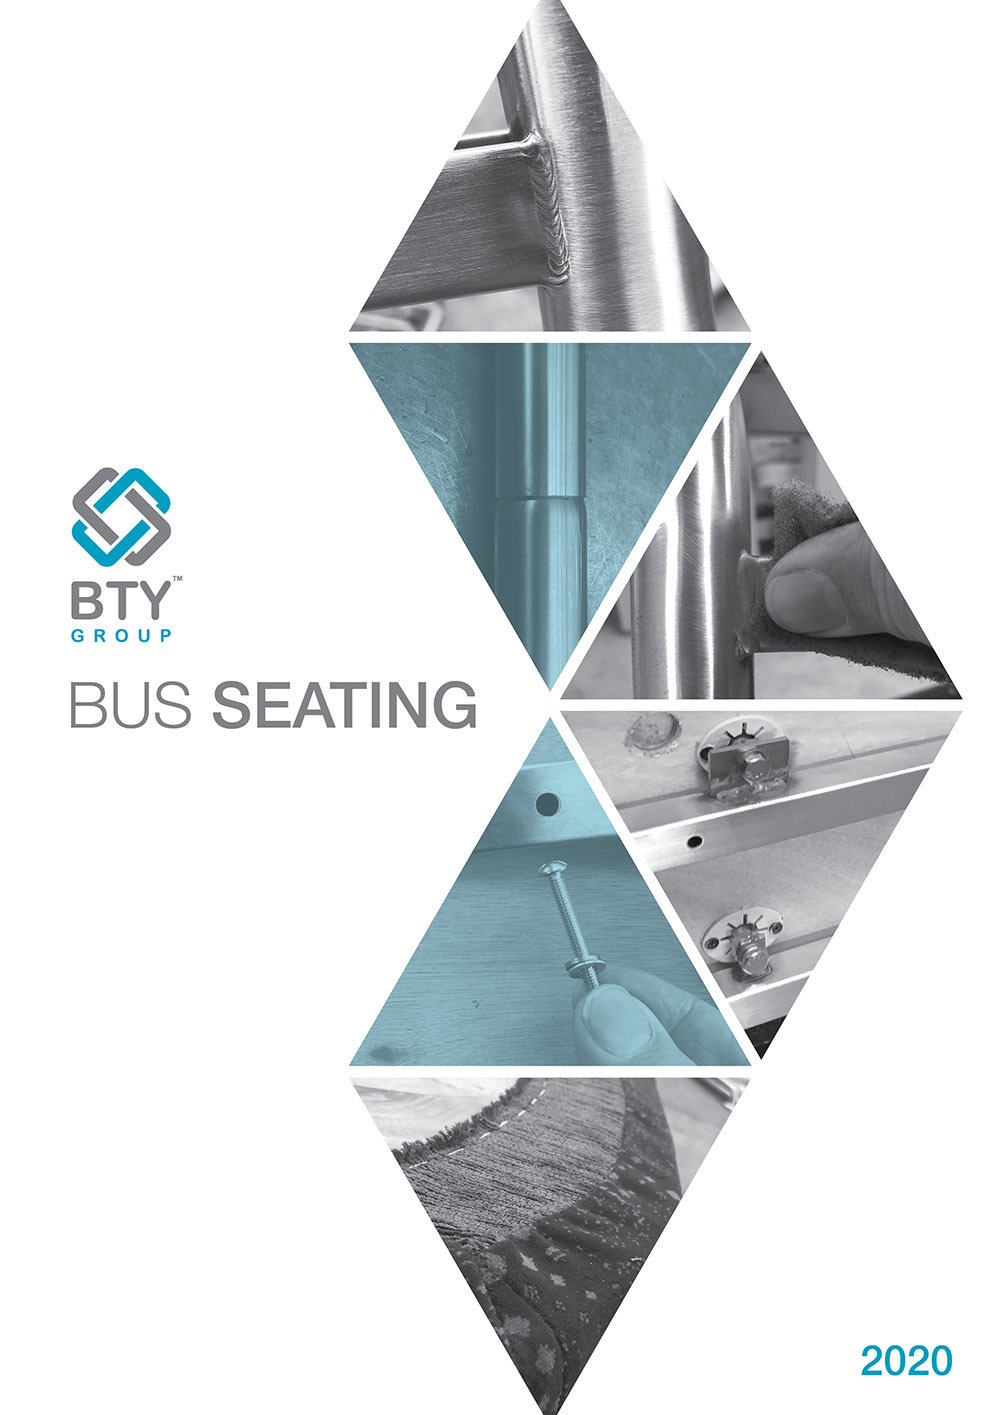 BTY Group Bus Seating